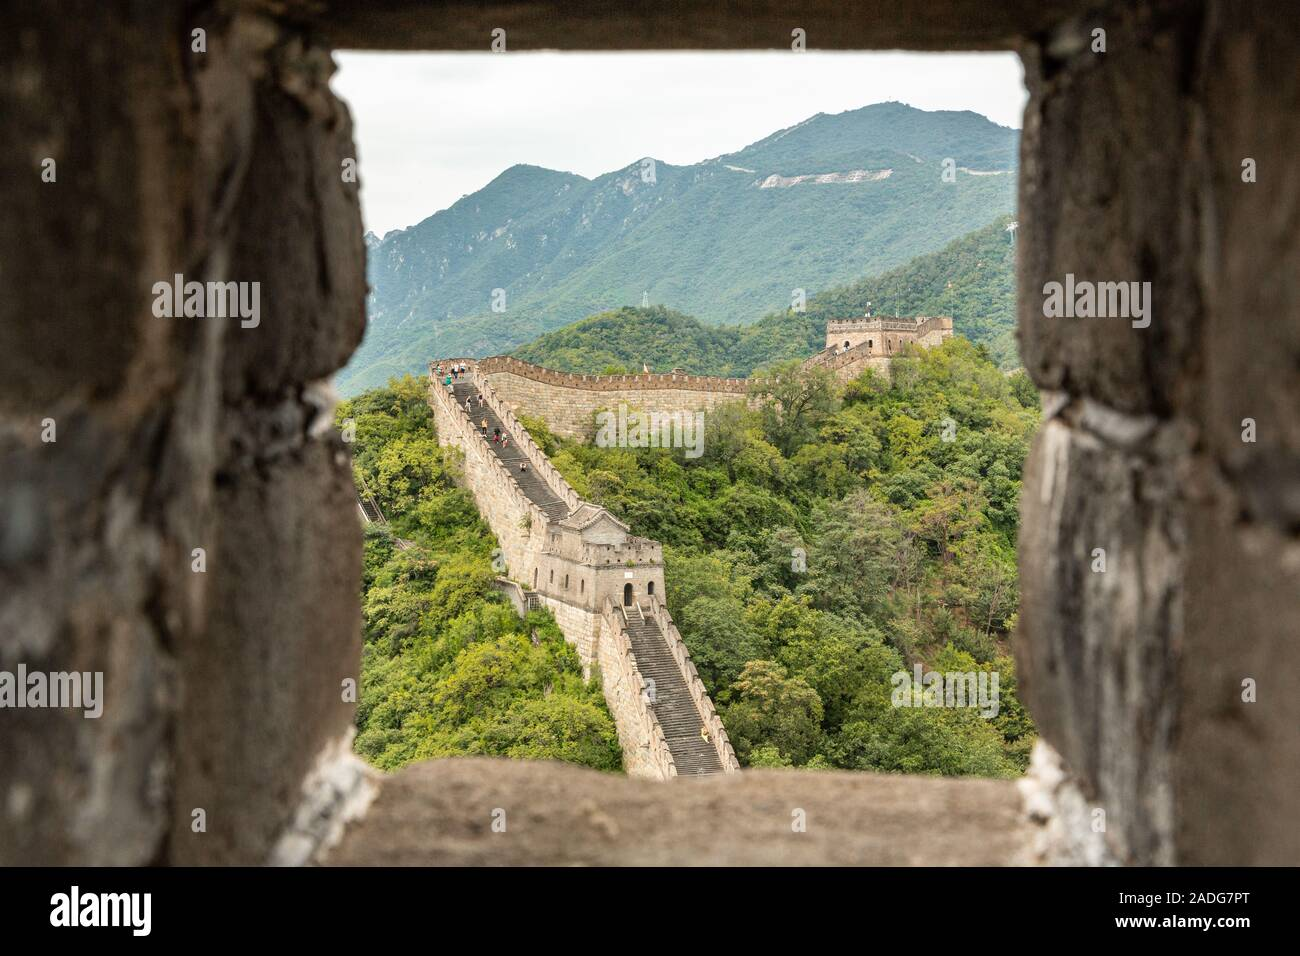 The Great Wall of China a UNESCO World Heritage site as seen from Mutianyu in the Huairou District, 70 kilometres north of Beijing China Stock Photo